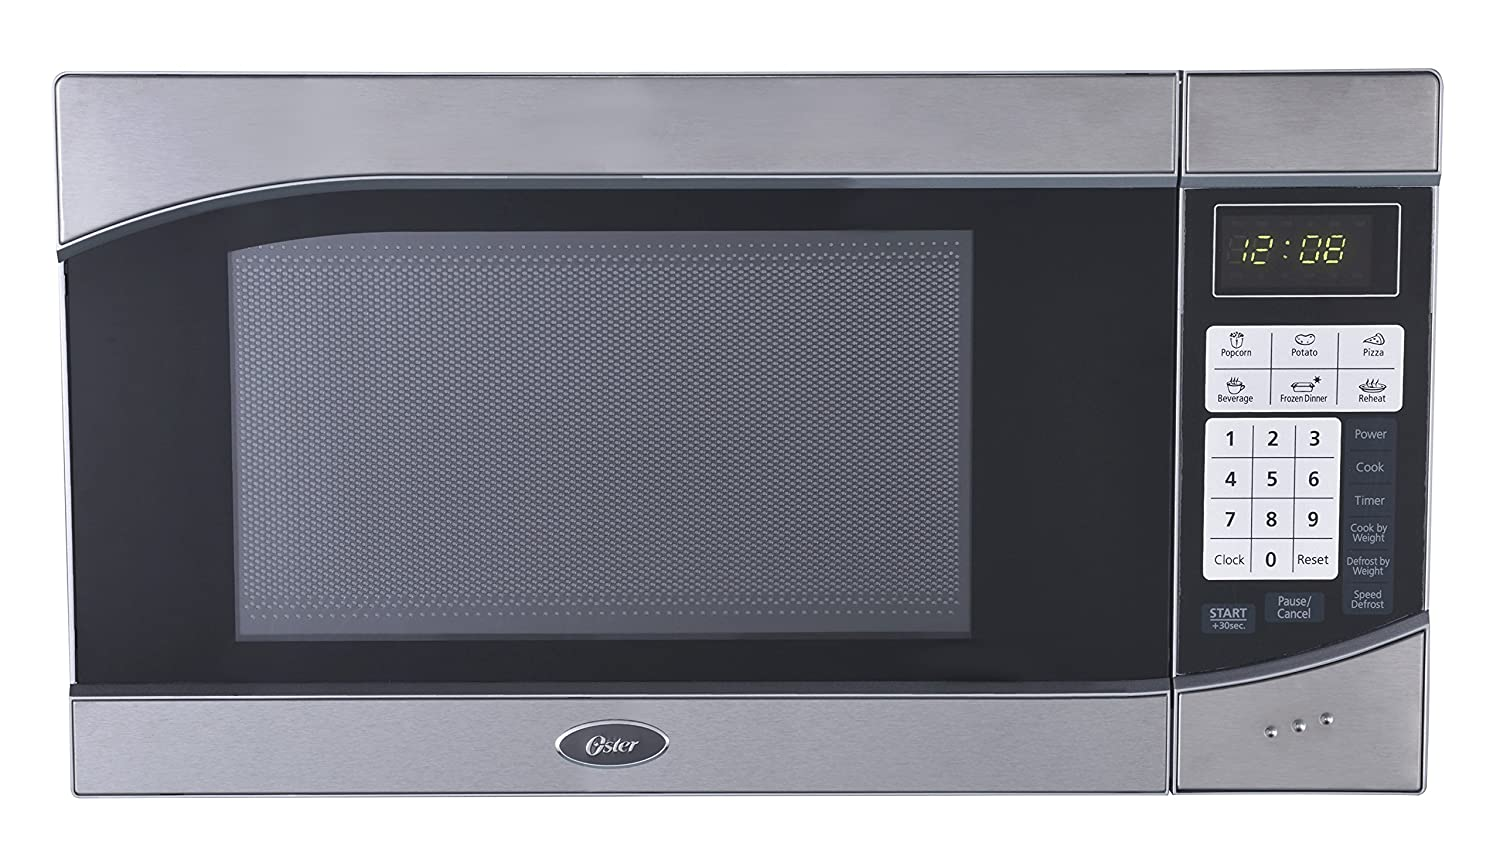 Amazon.com: Oster OGH6901 0.9 Cubic Feet 900-Watt Countertop ...